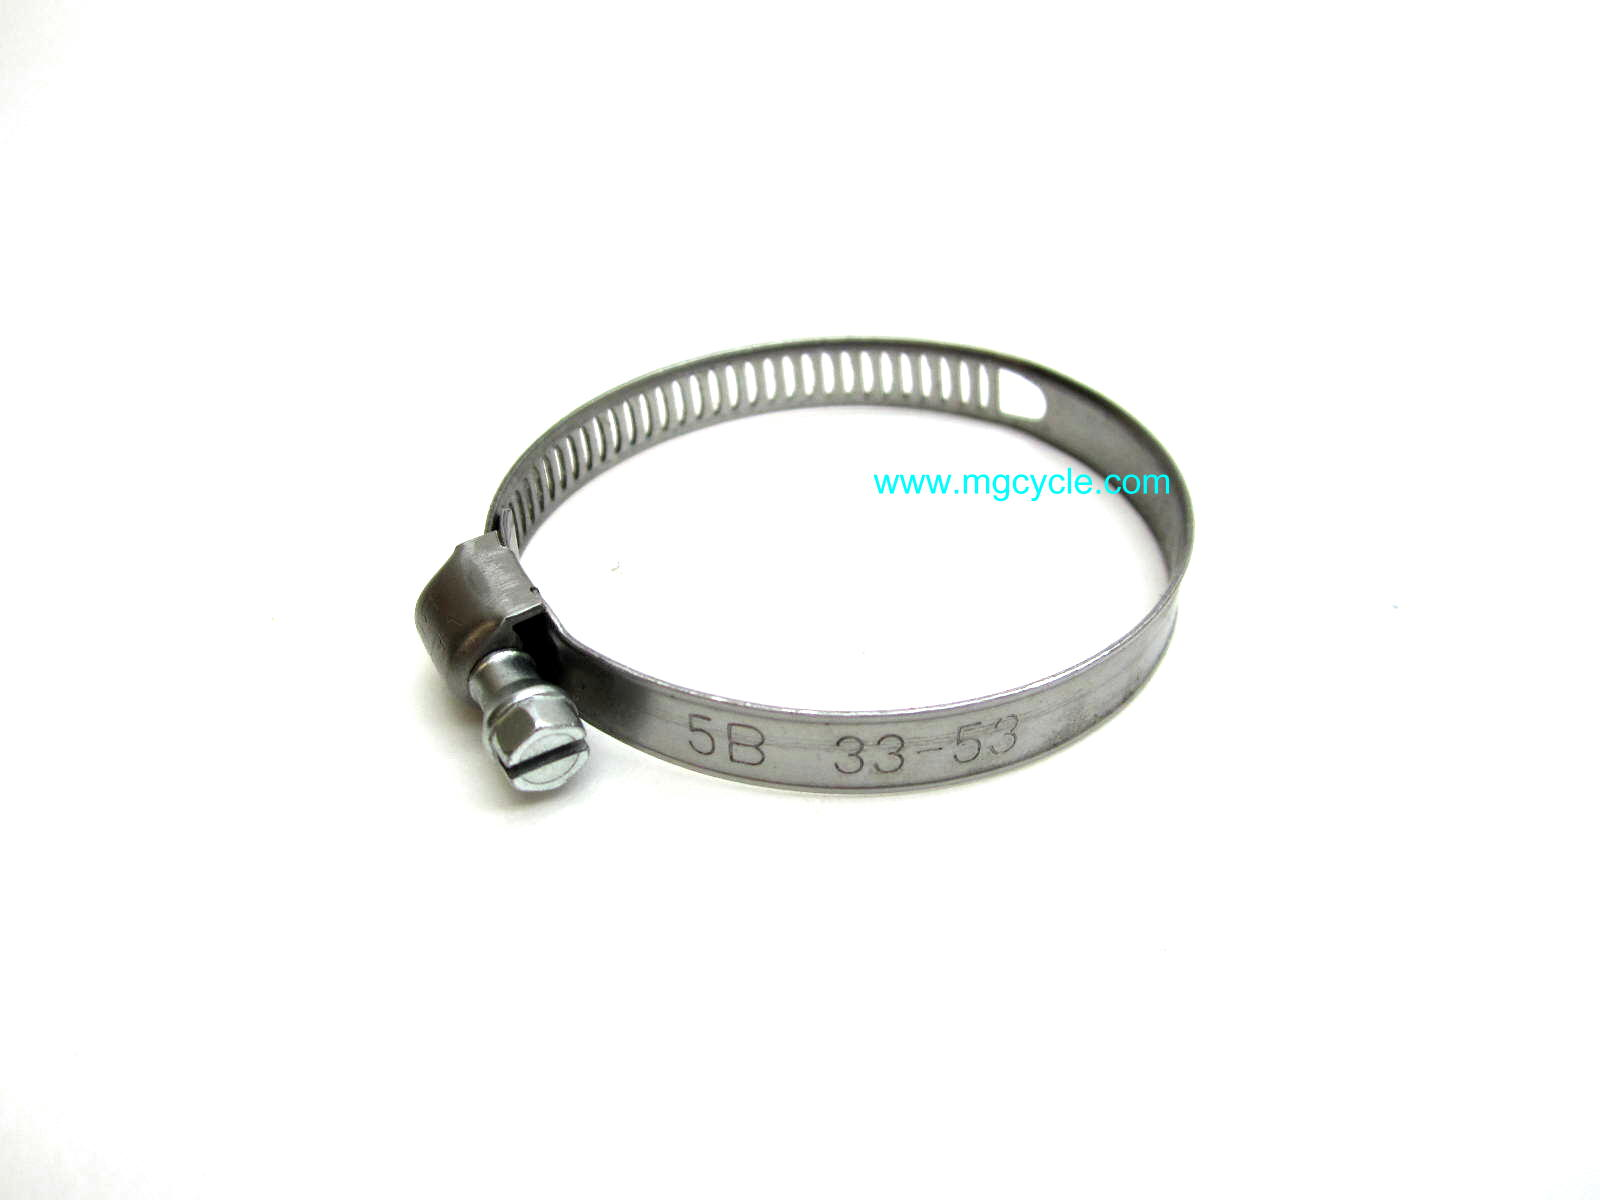 narrow stainless hose clamp, 33mm-53mm